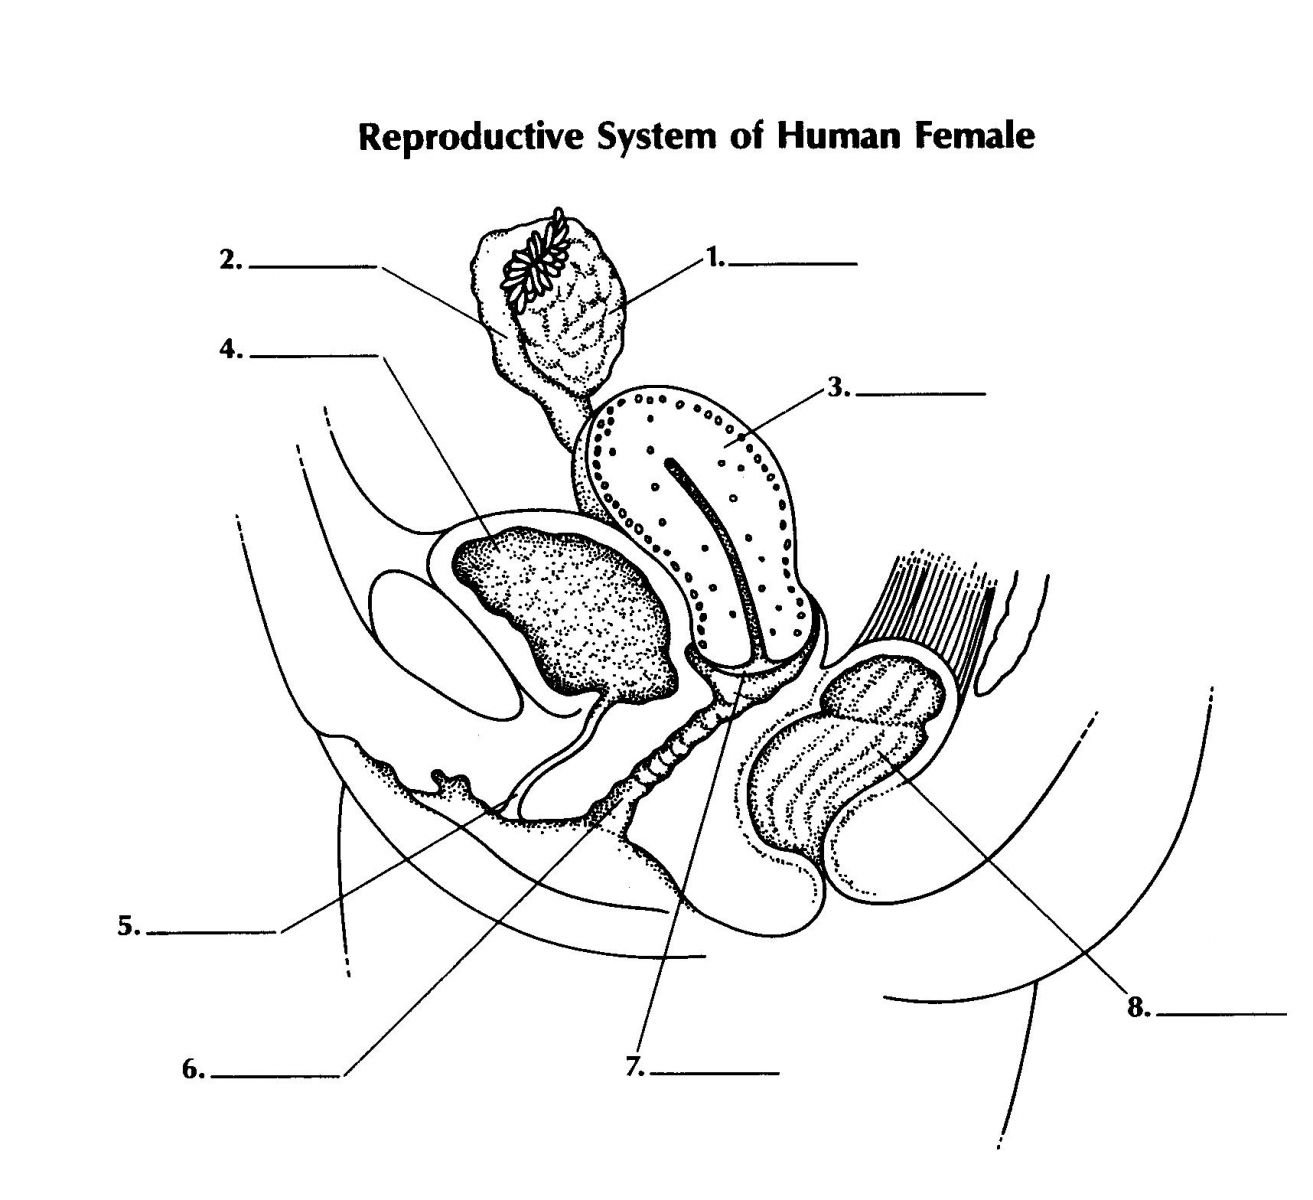 Female Reproductive System Diagram Unlabeled http://www.proprofs.com ...